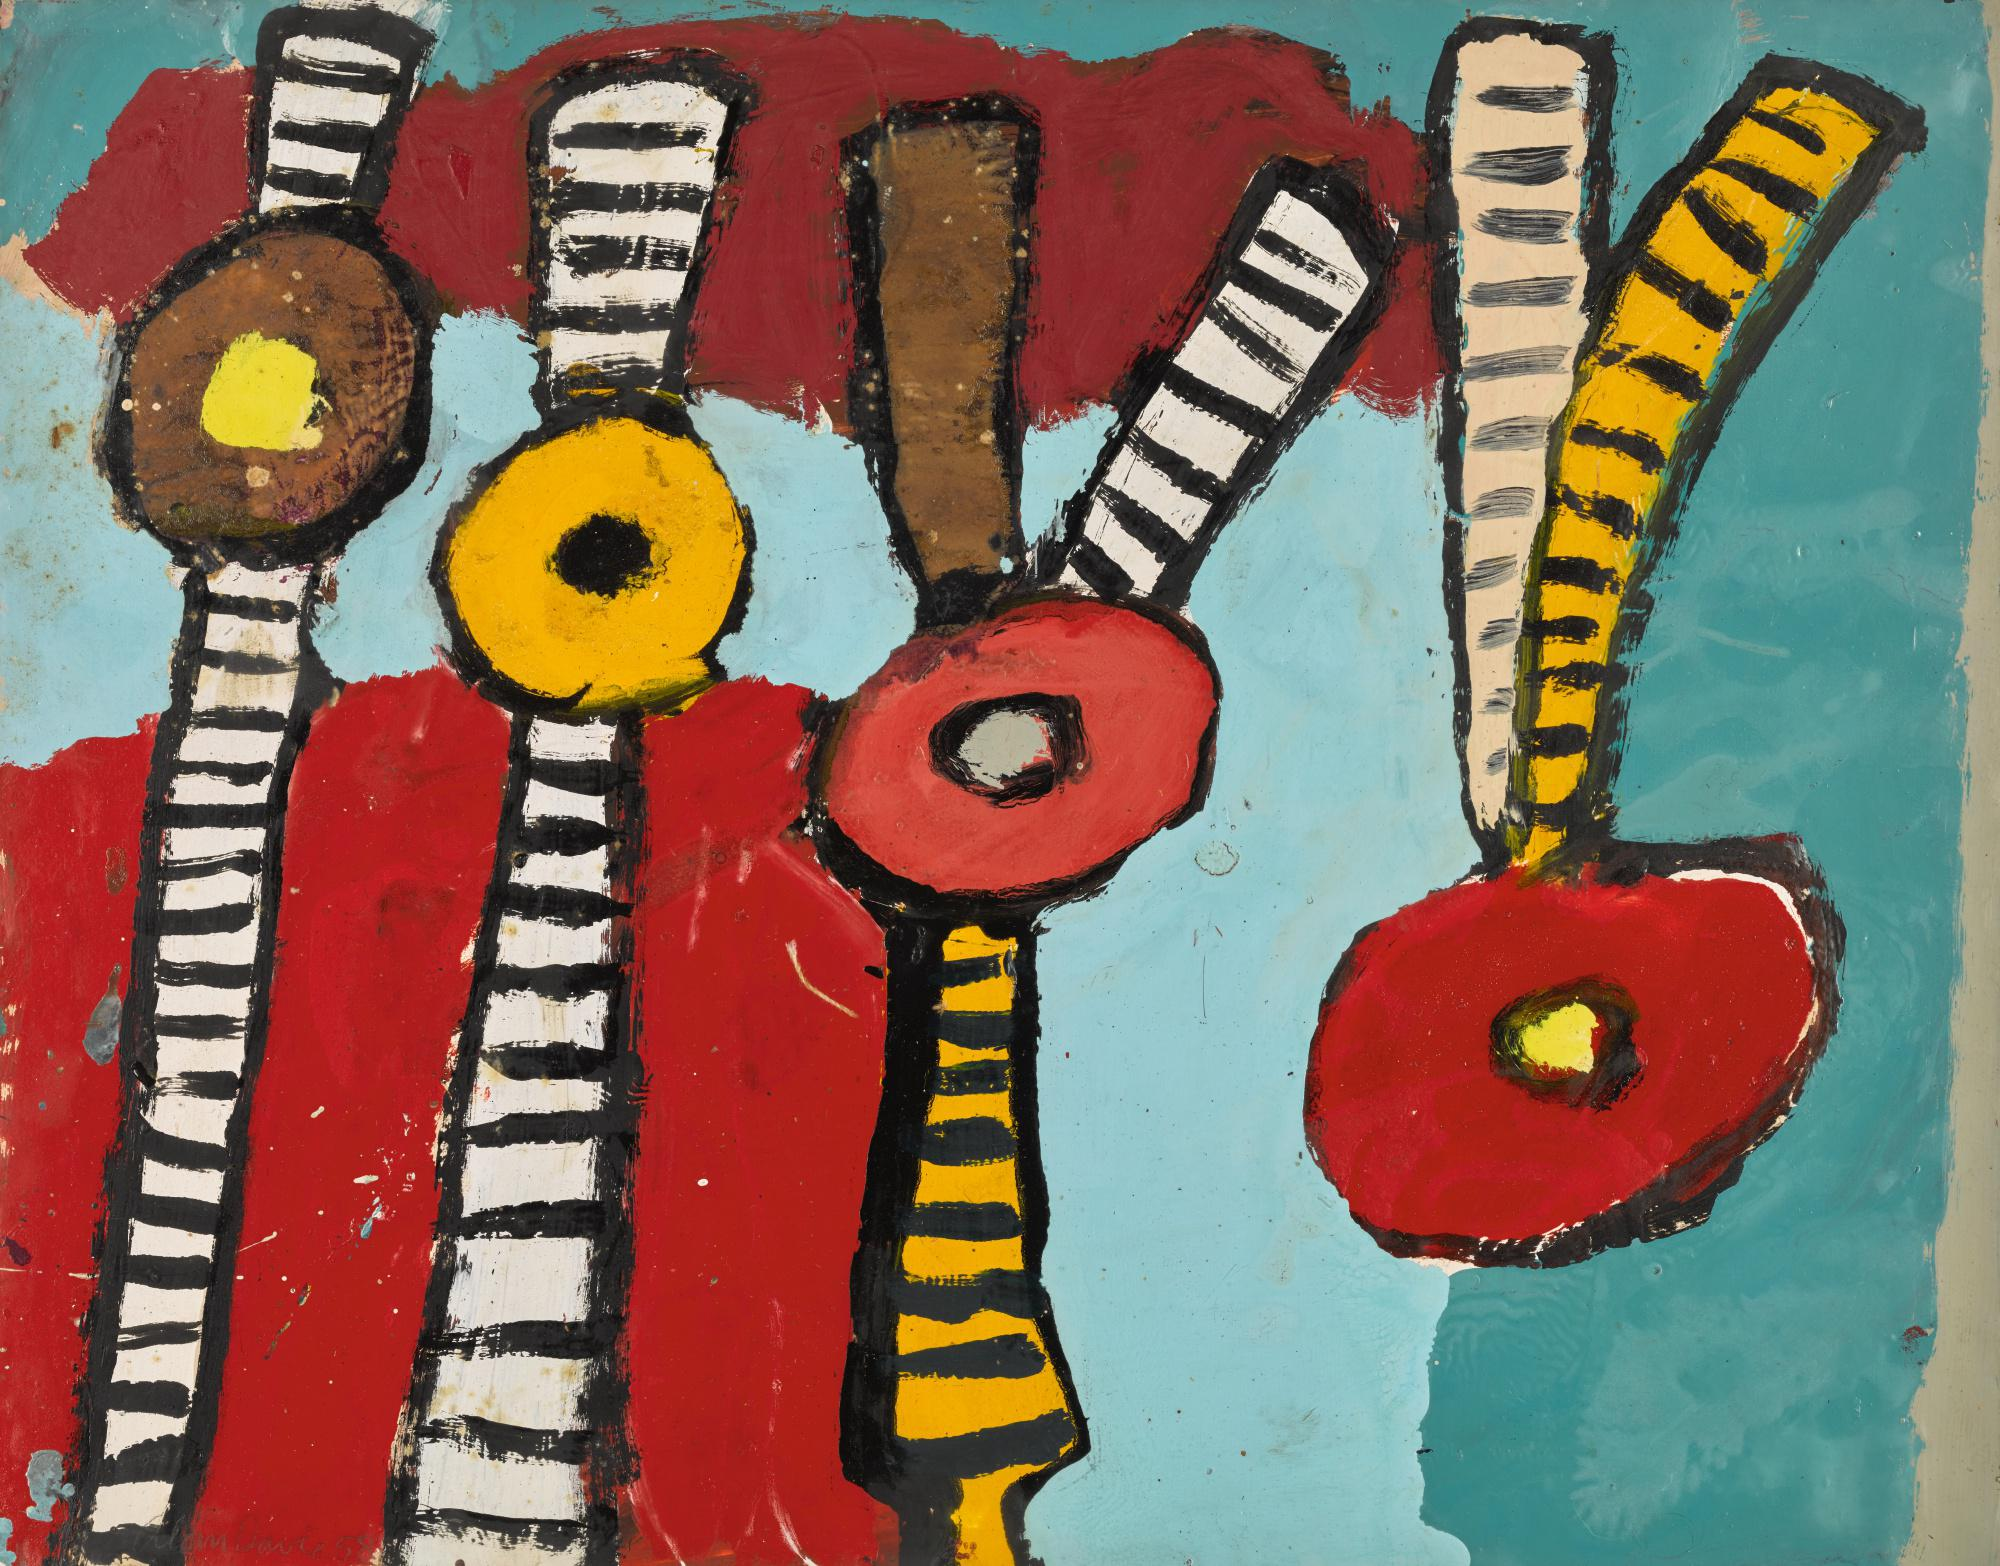 ALAN DAVIE | FLOWERS FOR THE COOL AIR